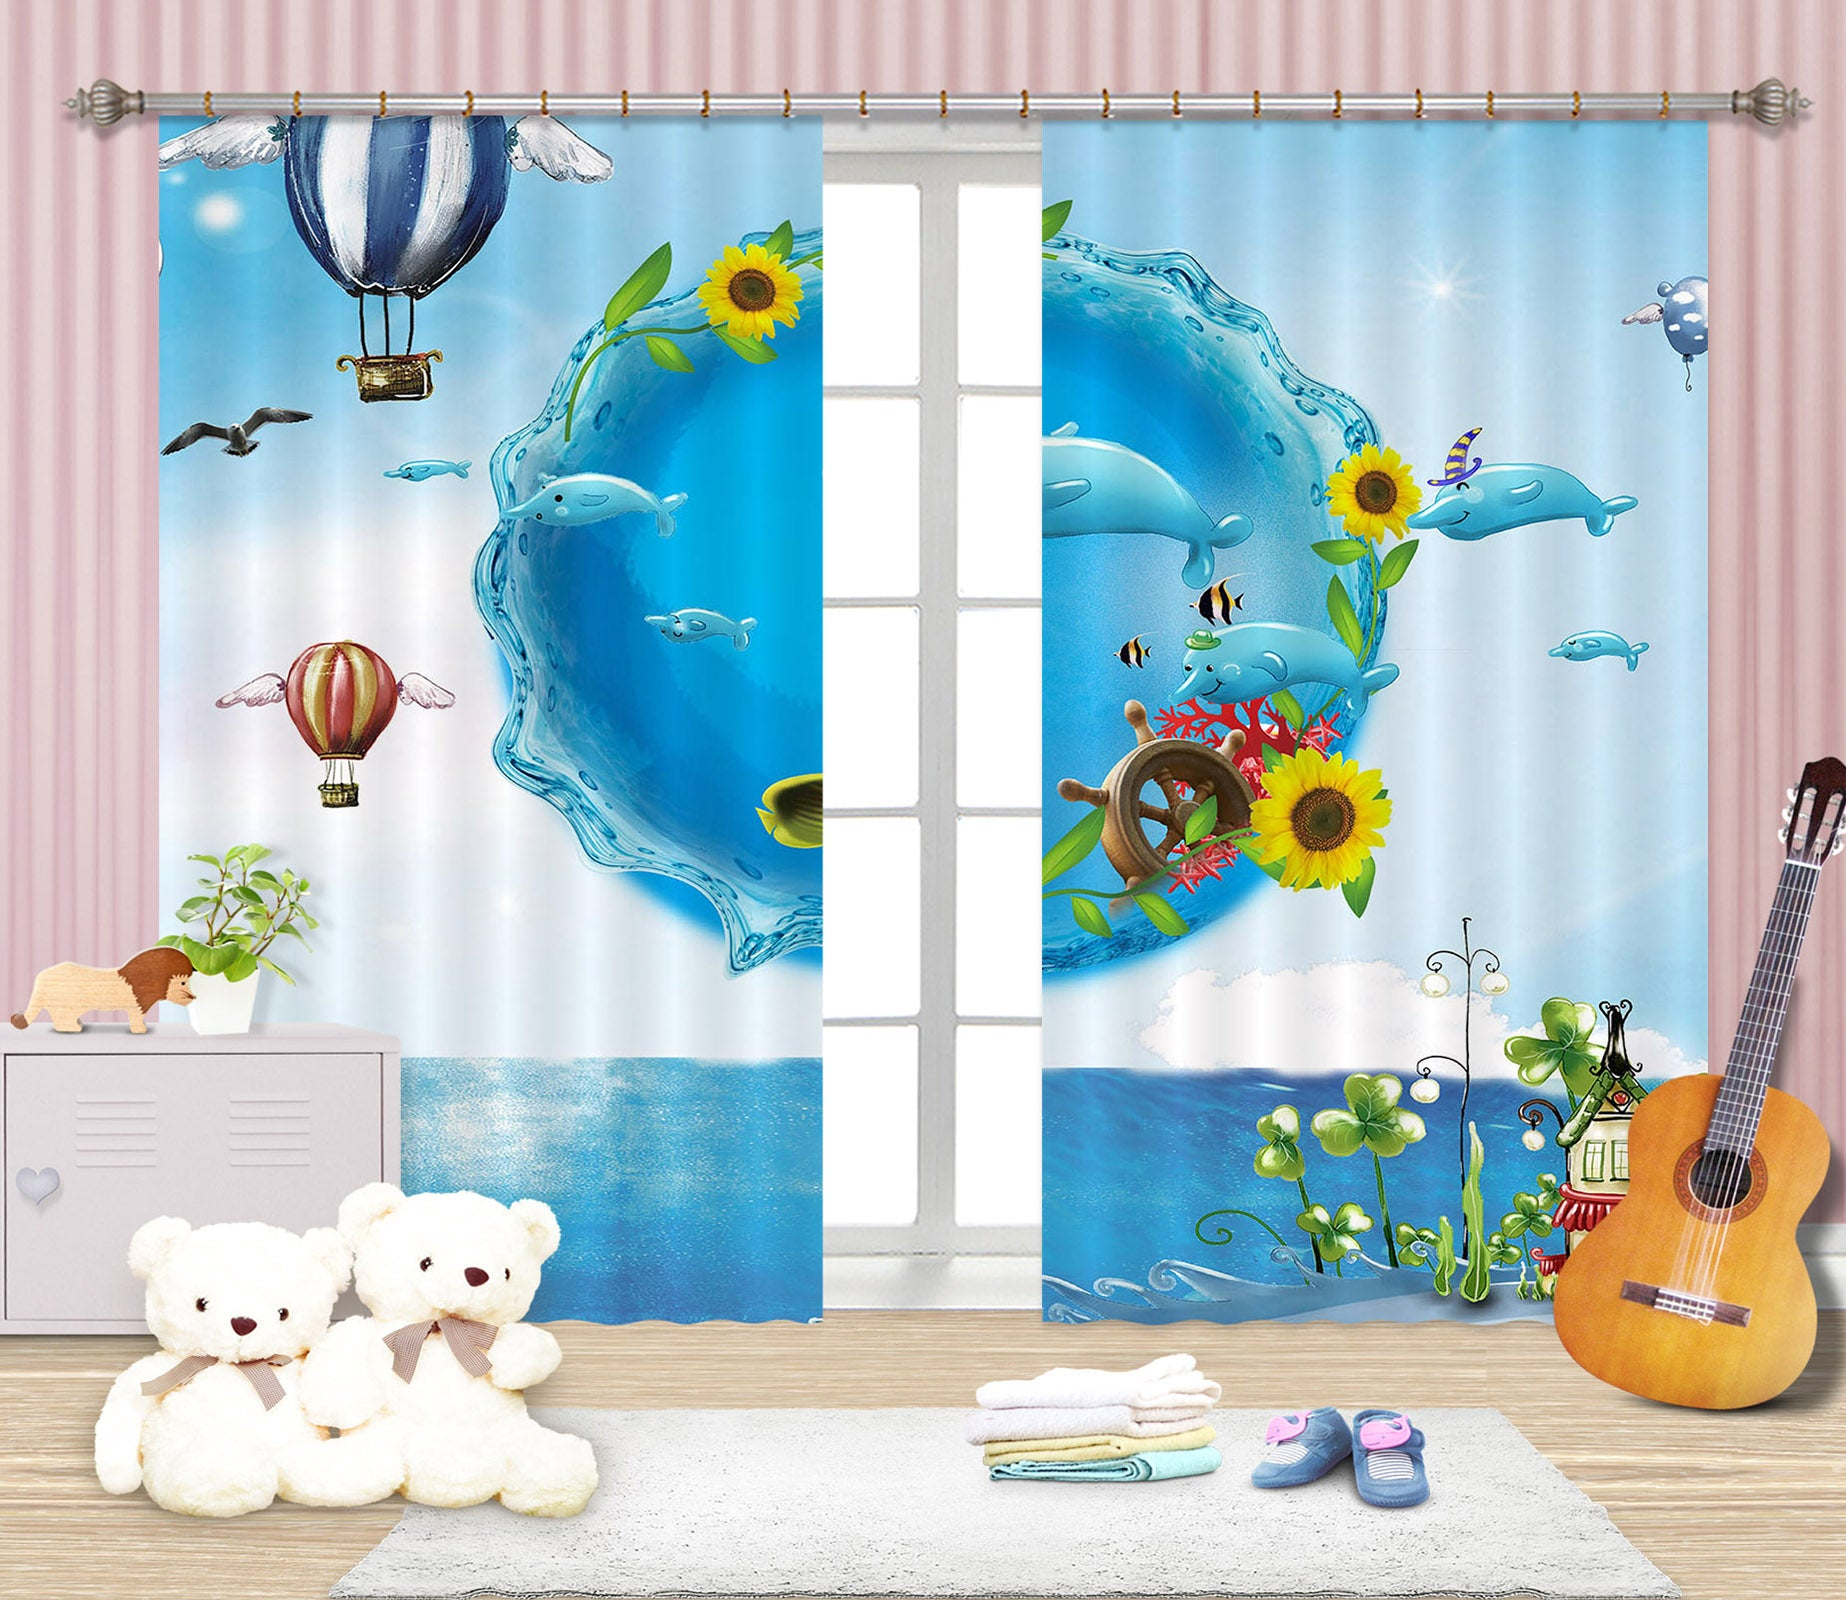 3D Blue Balloon 726 Curtains Drapes